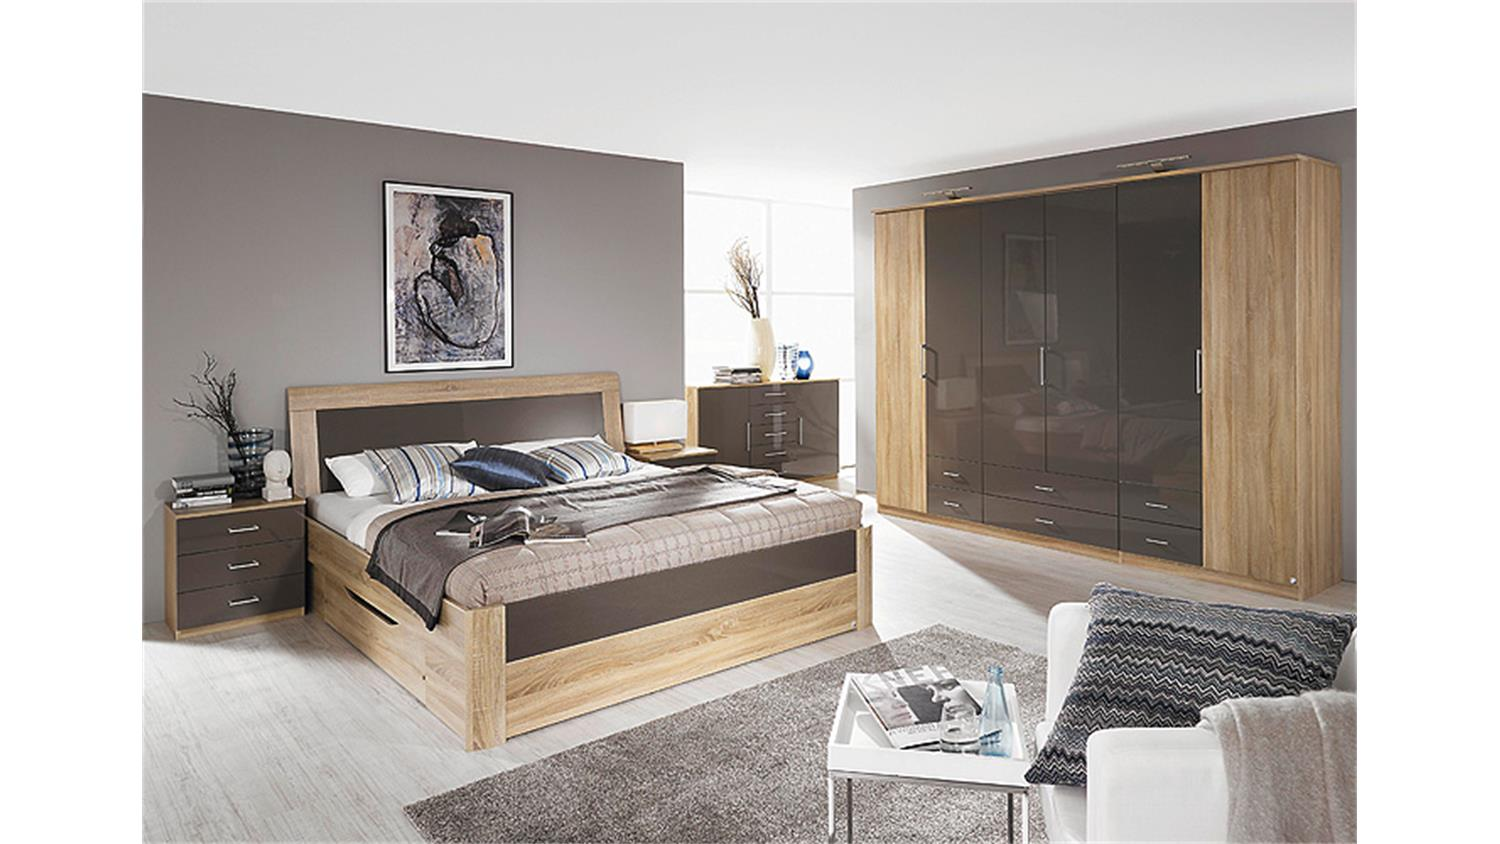 schlafzimmer set arona sonoma eiche und lava hochglanz 4 tlg. Black Bedroom Furniture Sets. Home Design Ideas